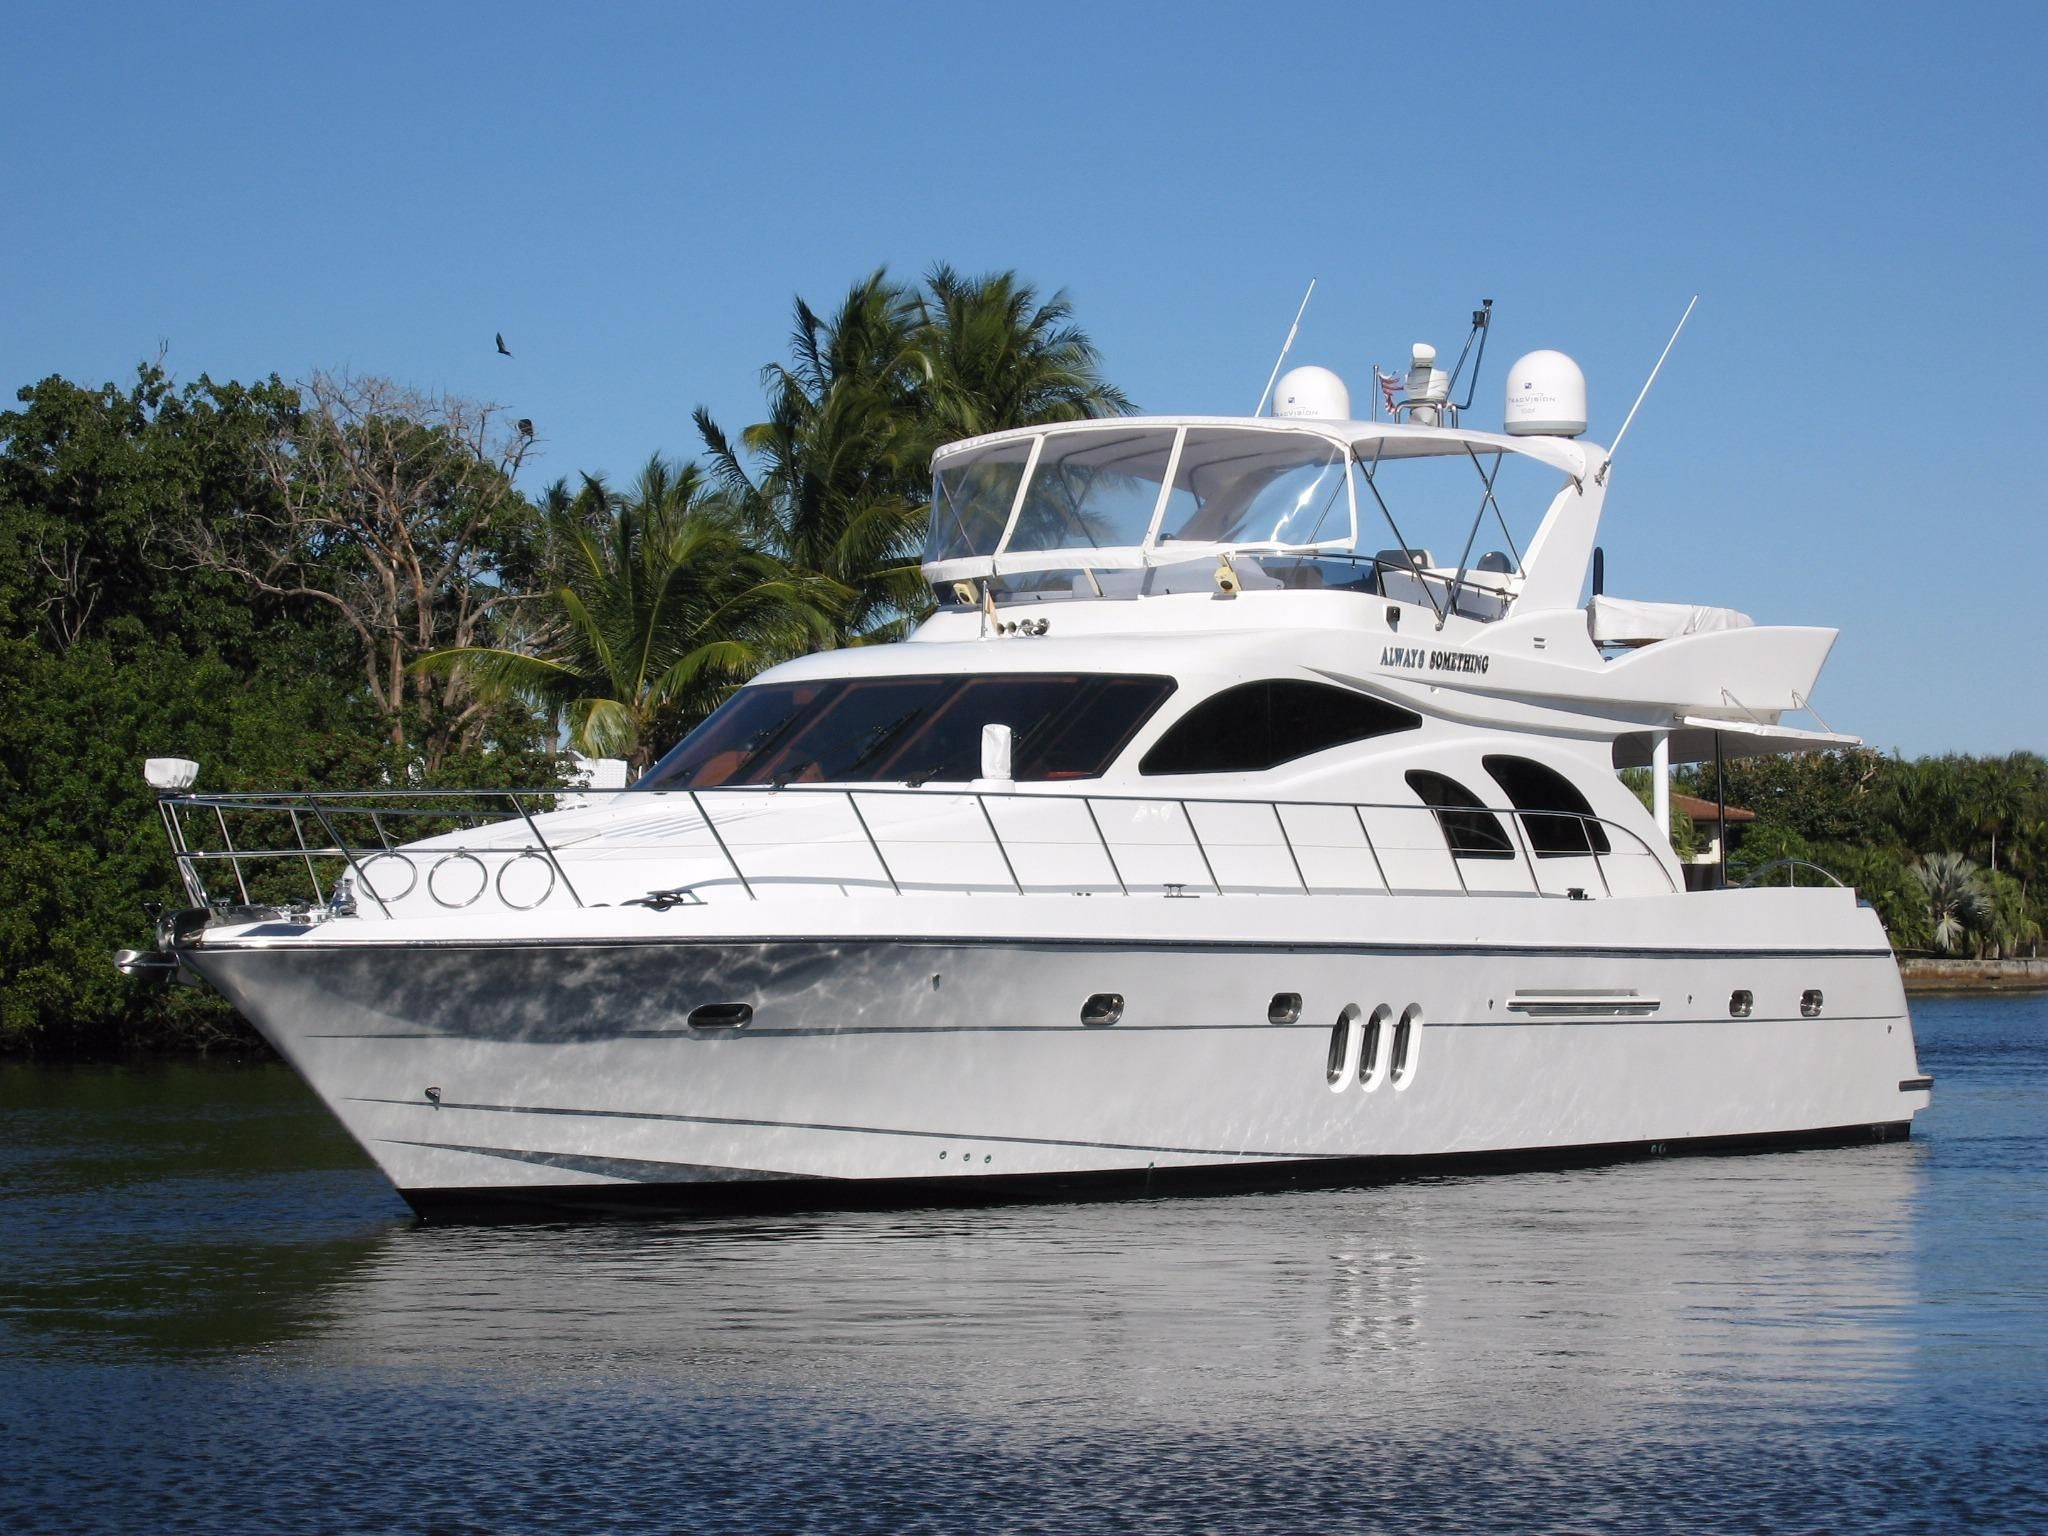 2009 grand harbour 66 motoryacht power boat for sale www